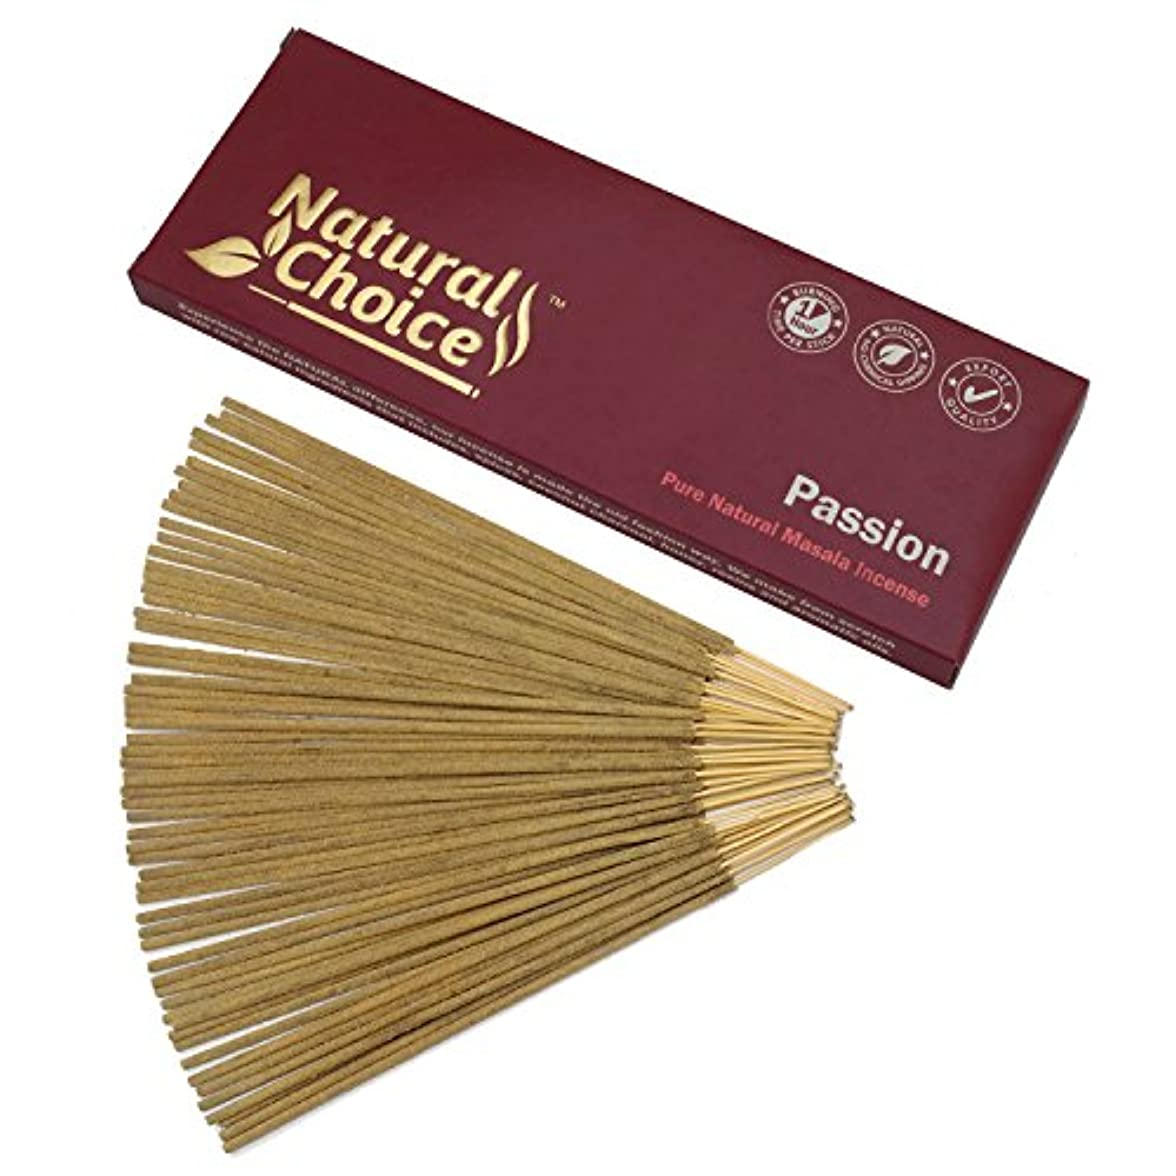 クライストチャーチ円周ブラウスNatural Choice Incense Passion Incense Sticks 100 gm – Made from Scratch – No Dipping